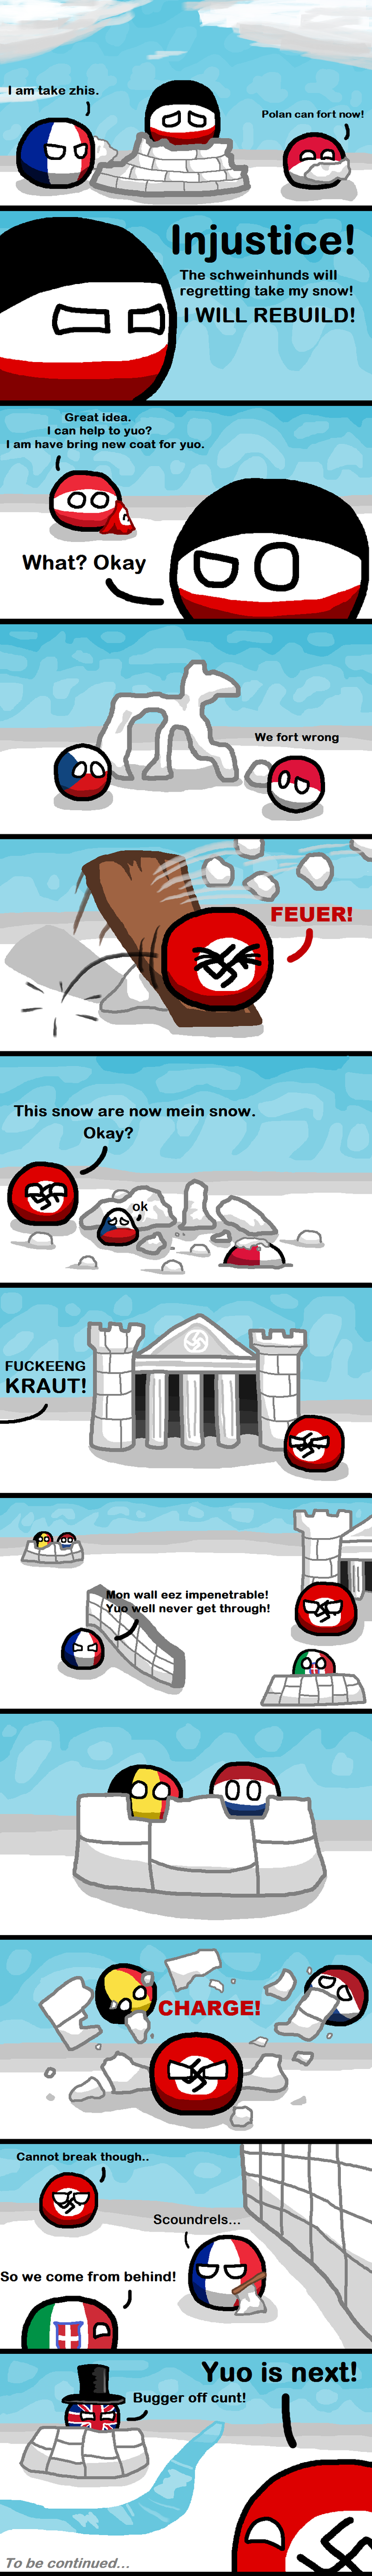 Daily Polandball: WWII, in the Snow